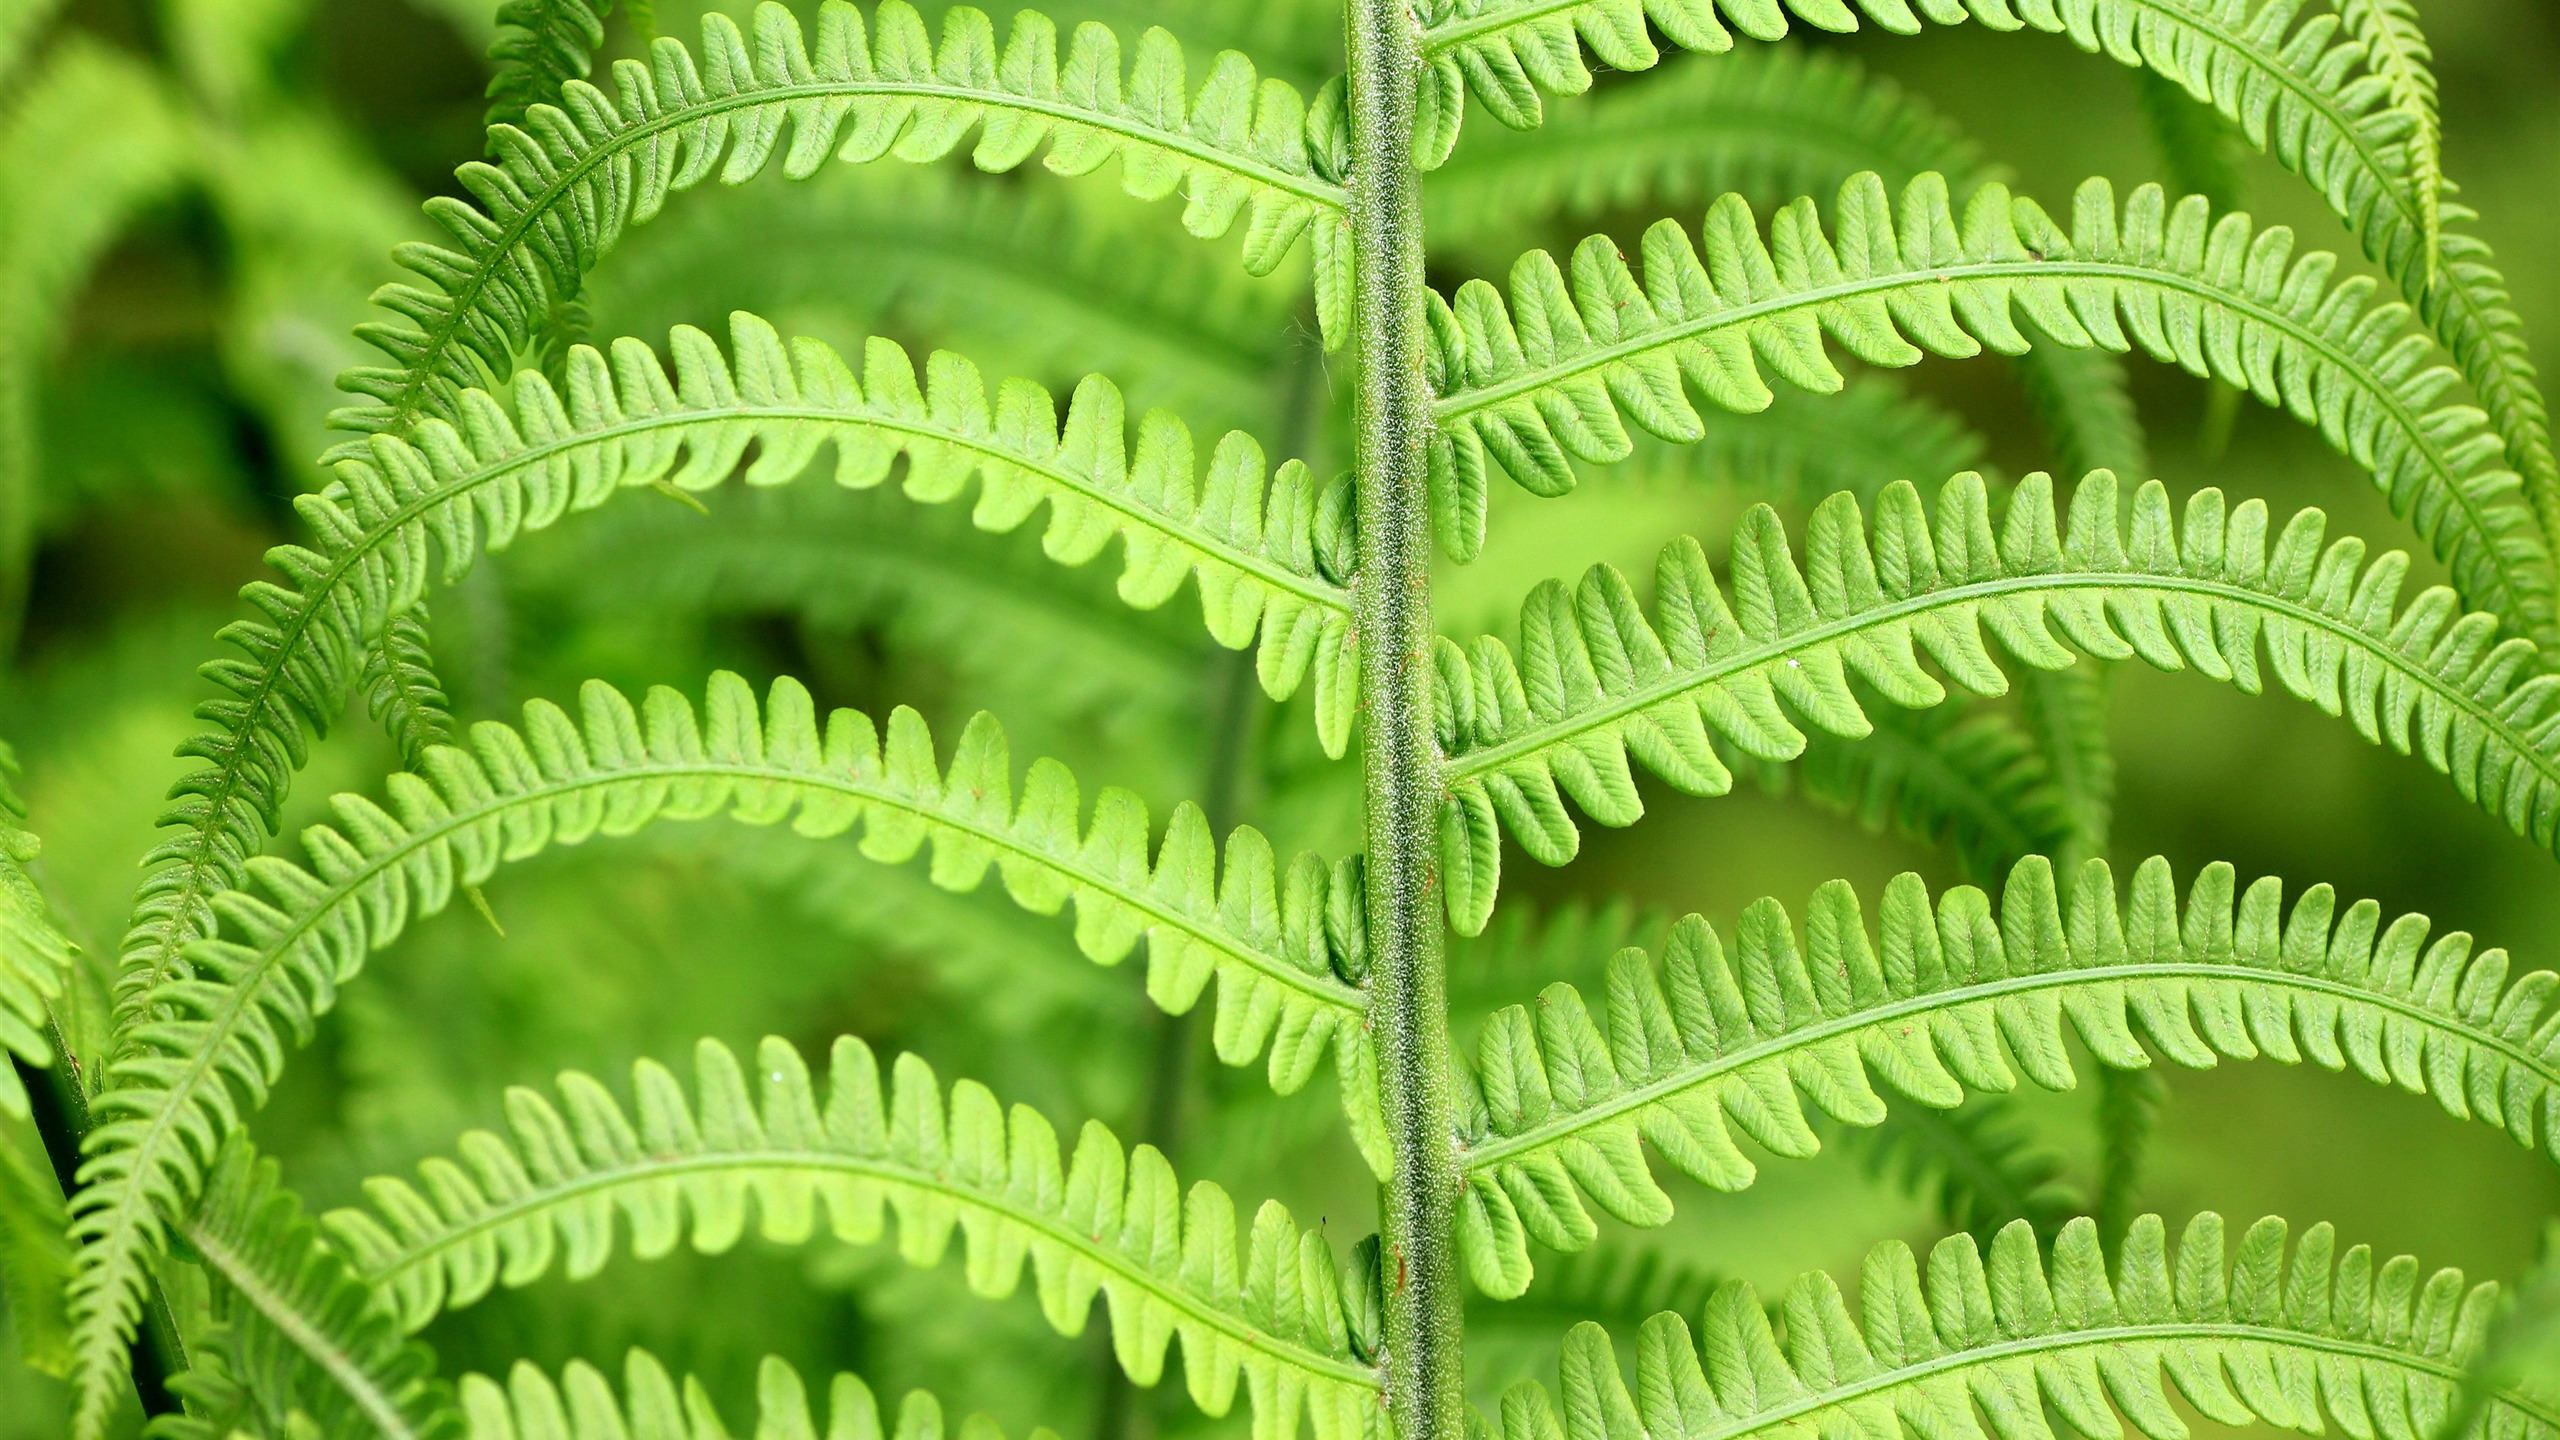 Spring forest green fern plant leaf - 2560x1440 wallpaper download